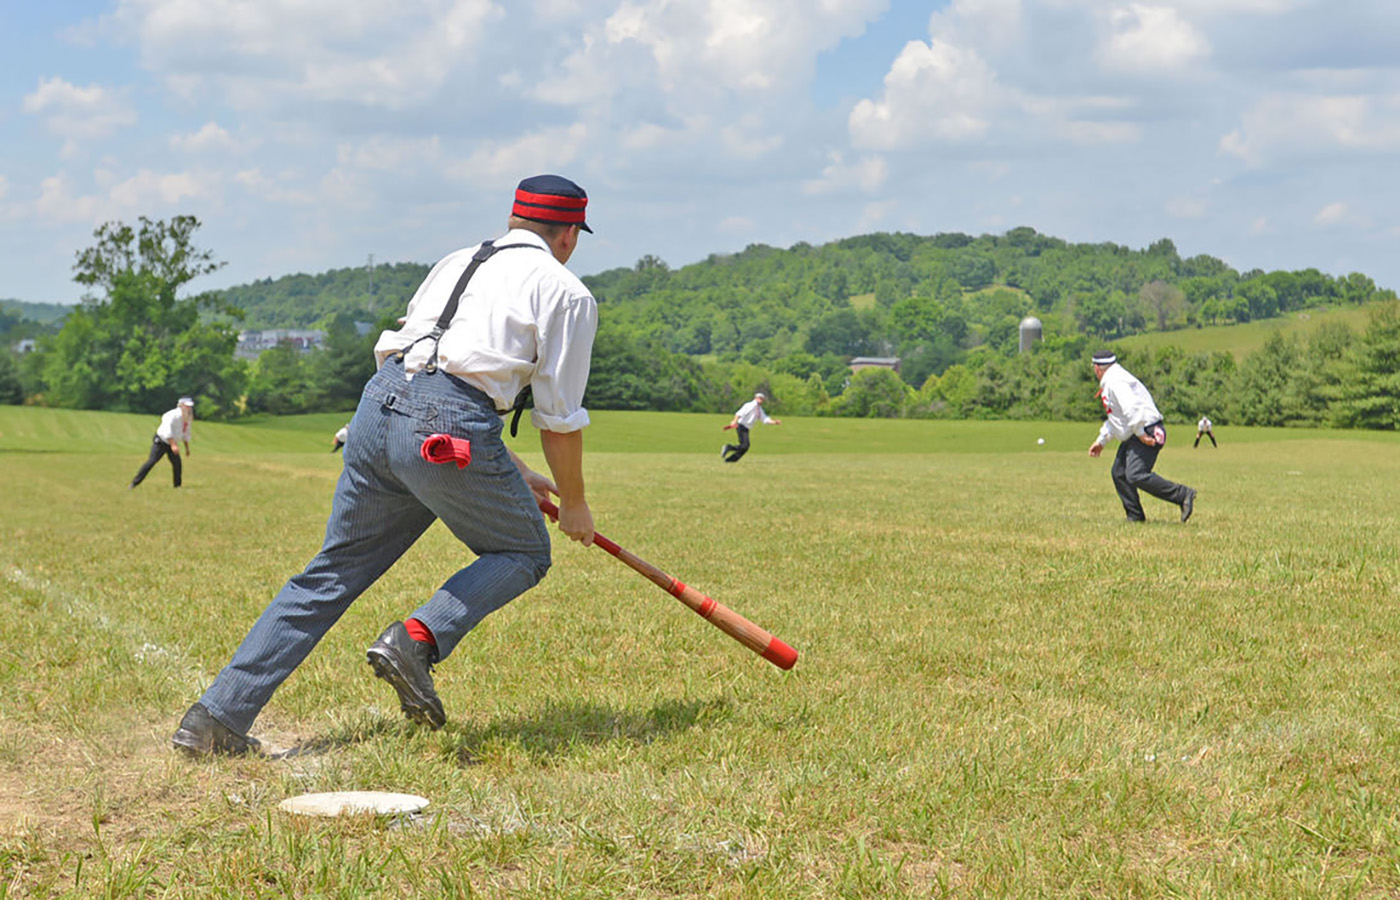 Play Ball! Free Vintage Baseball All Summer Long